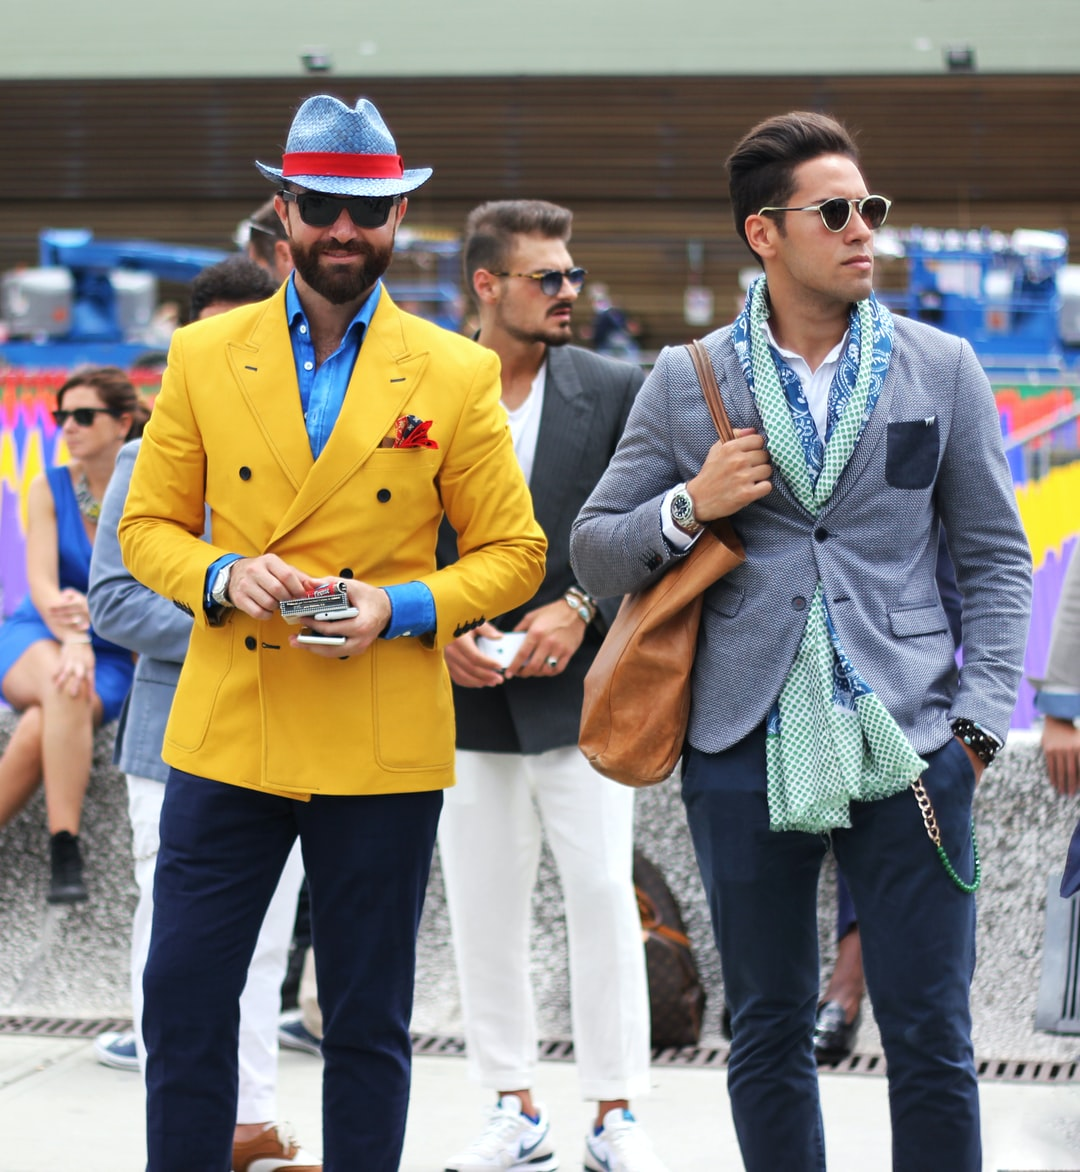 I took this photo while on photography assignment at Pitti Uomo, the largest menswear fashion tradeshow in the world, in Florence, Italy. At Pitti there is a square where key players in mens fashion network with eachother and show their sartorial style.